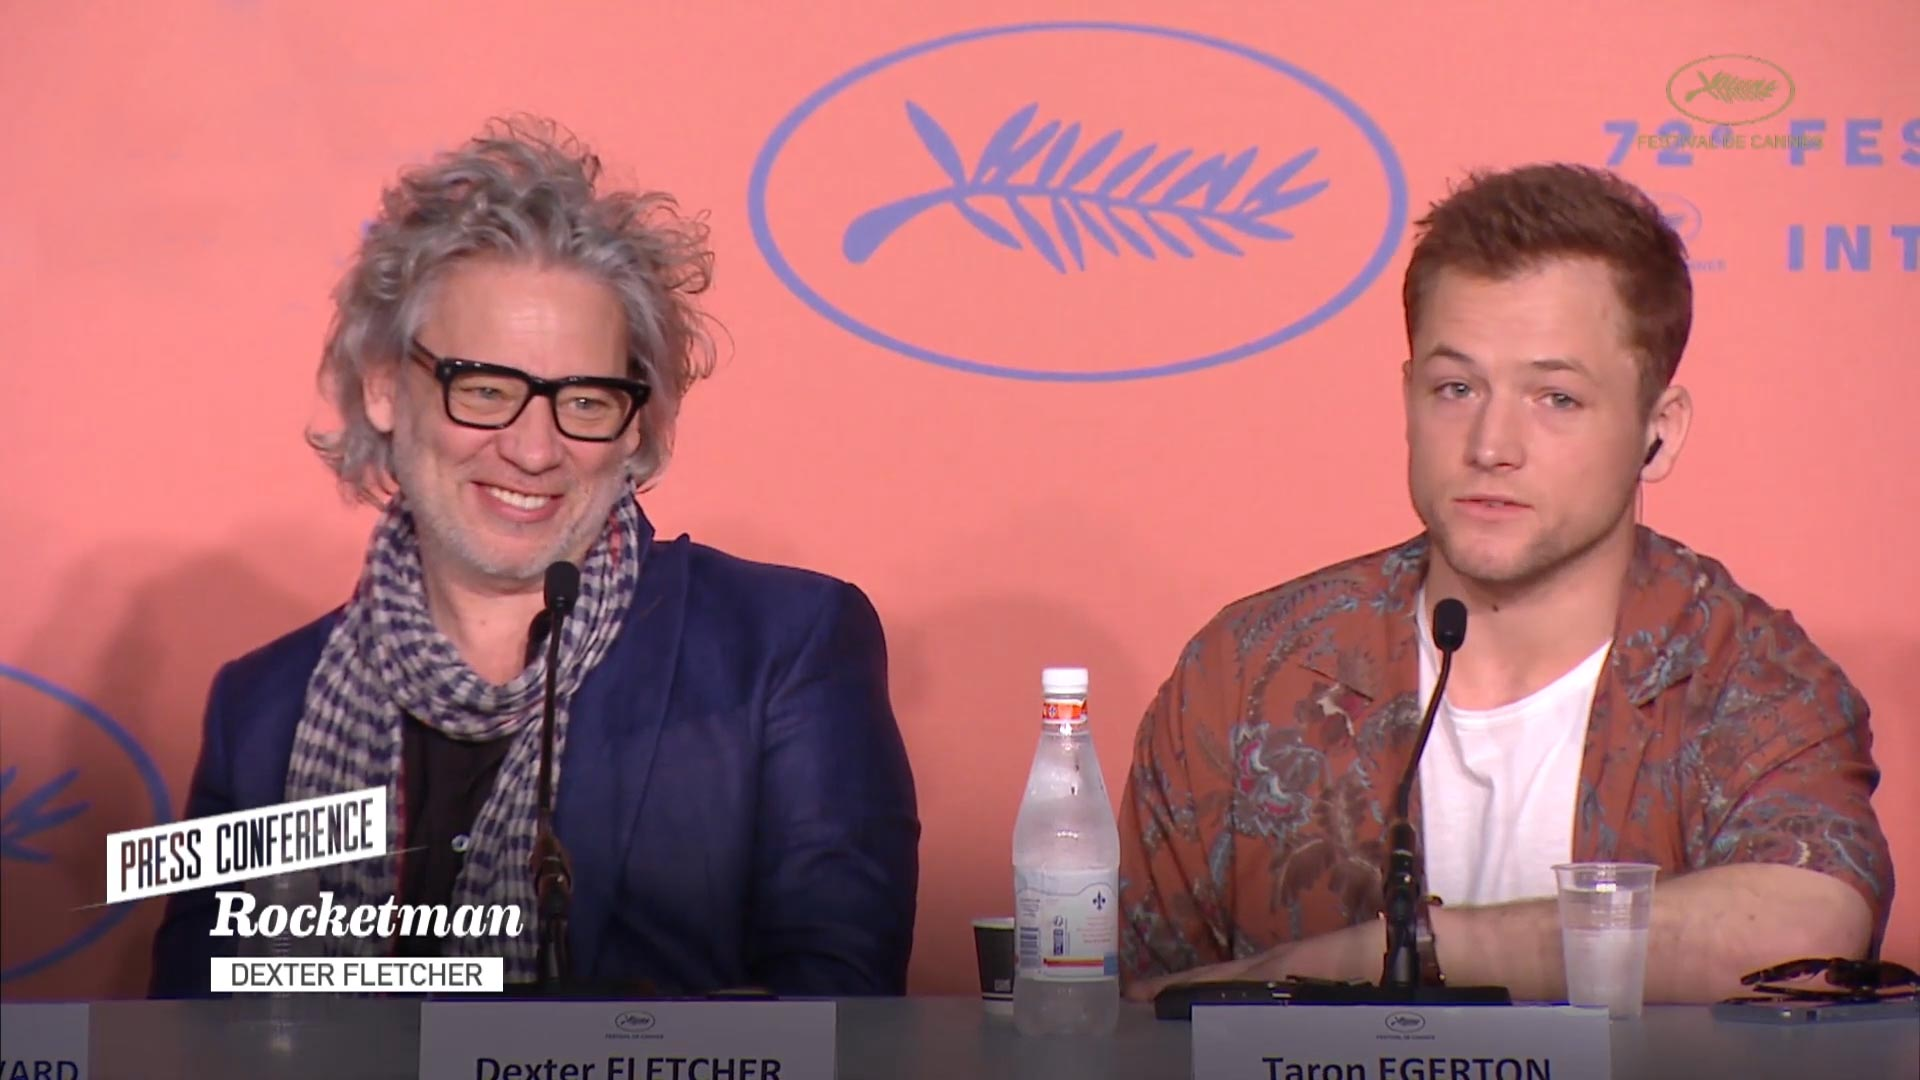 Cannes 2019: Rocketman's Taron Egerton and Dexter Fletcher on Elton John and Trying to Make His Iconic Music Their Own